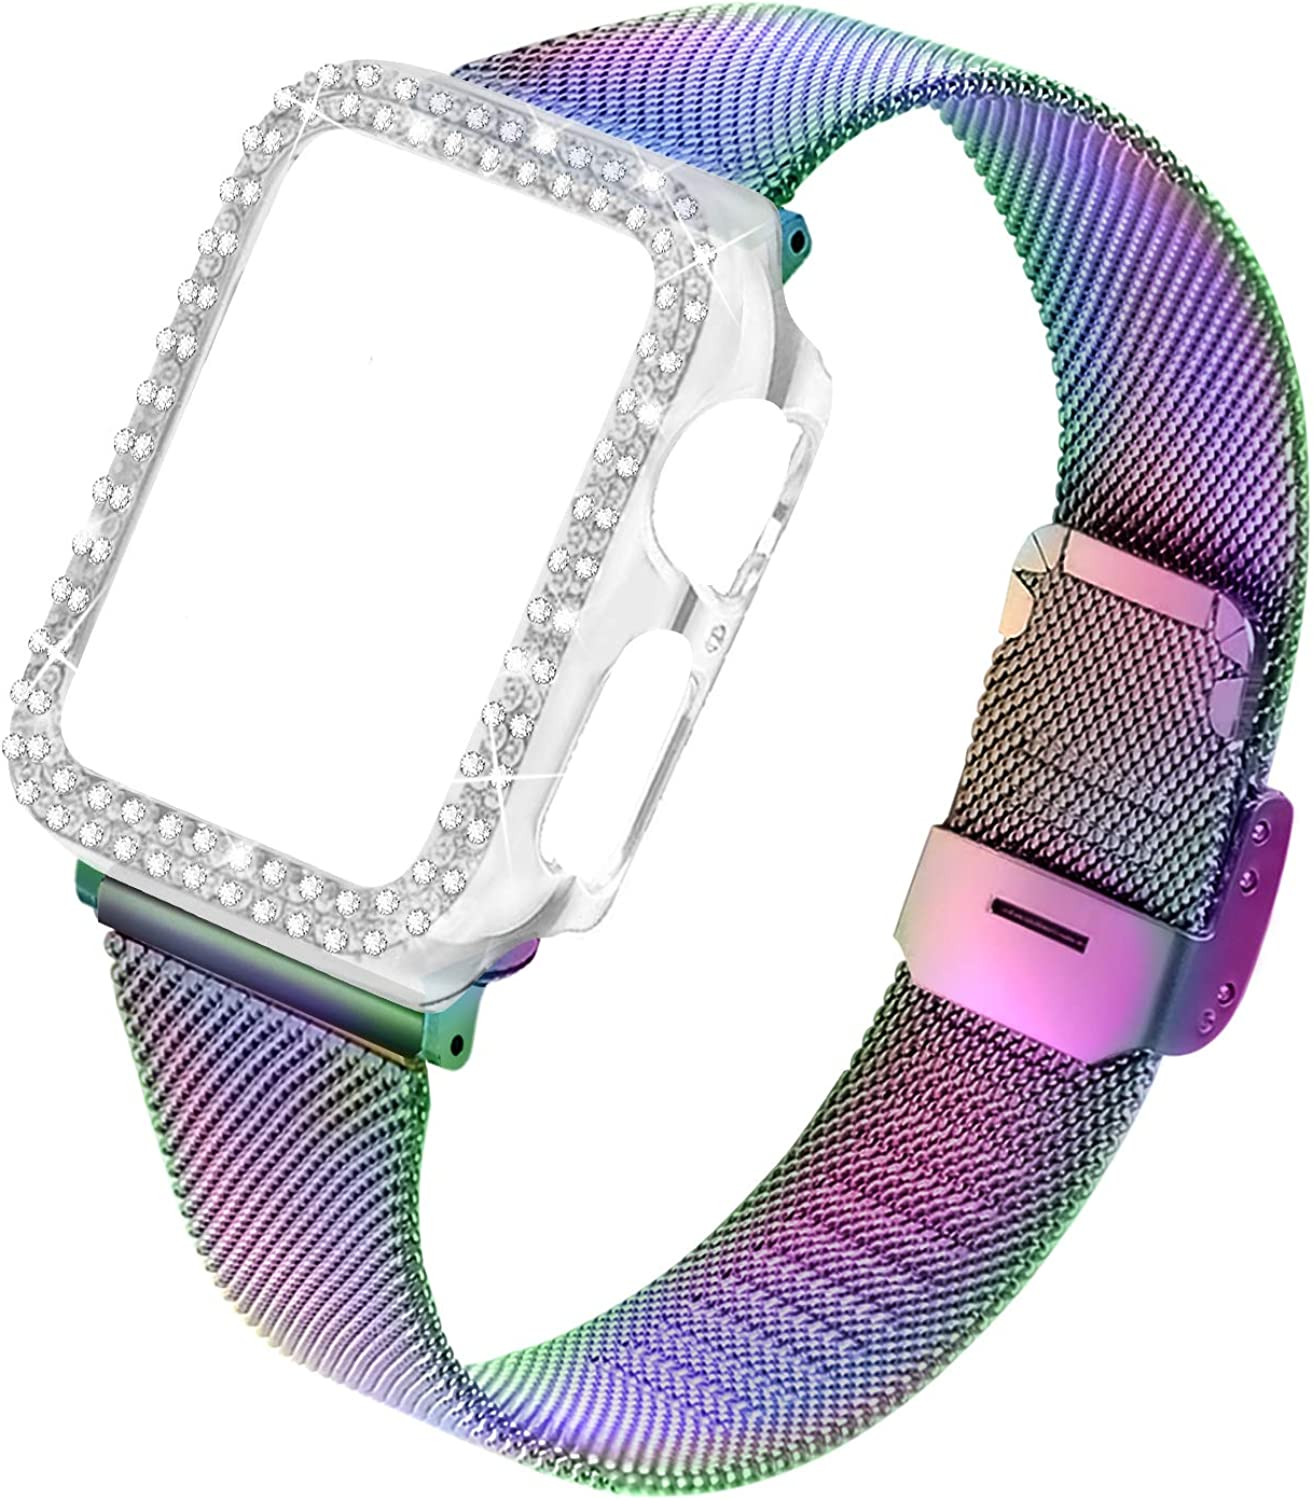 Joyozy Stainless Steel Mesh bands Compatible For Apple Watch 38mm 40mm 42mm 44mm,Women Bling Protective Crystal Diamond Case with Loop Mesh Strap For Iwatch Series 6/SE/5/4/3/2/1(No Tool Needed)